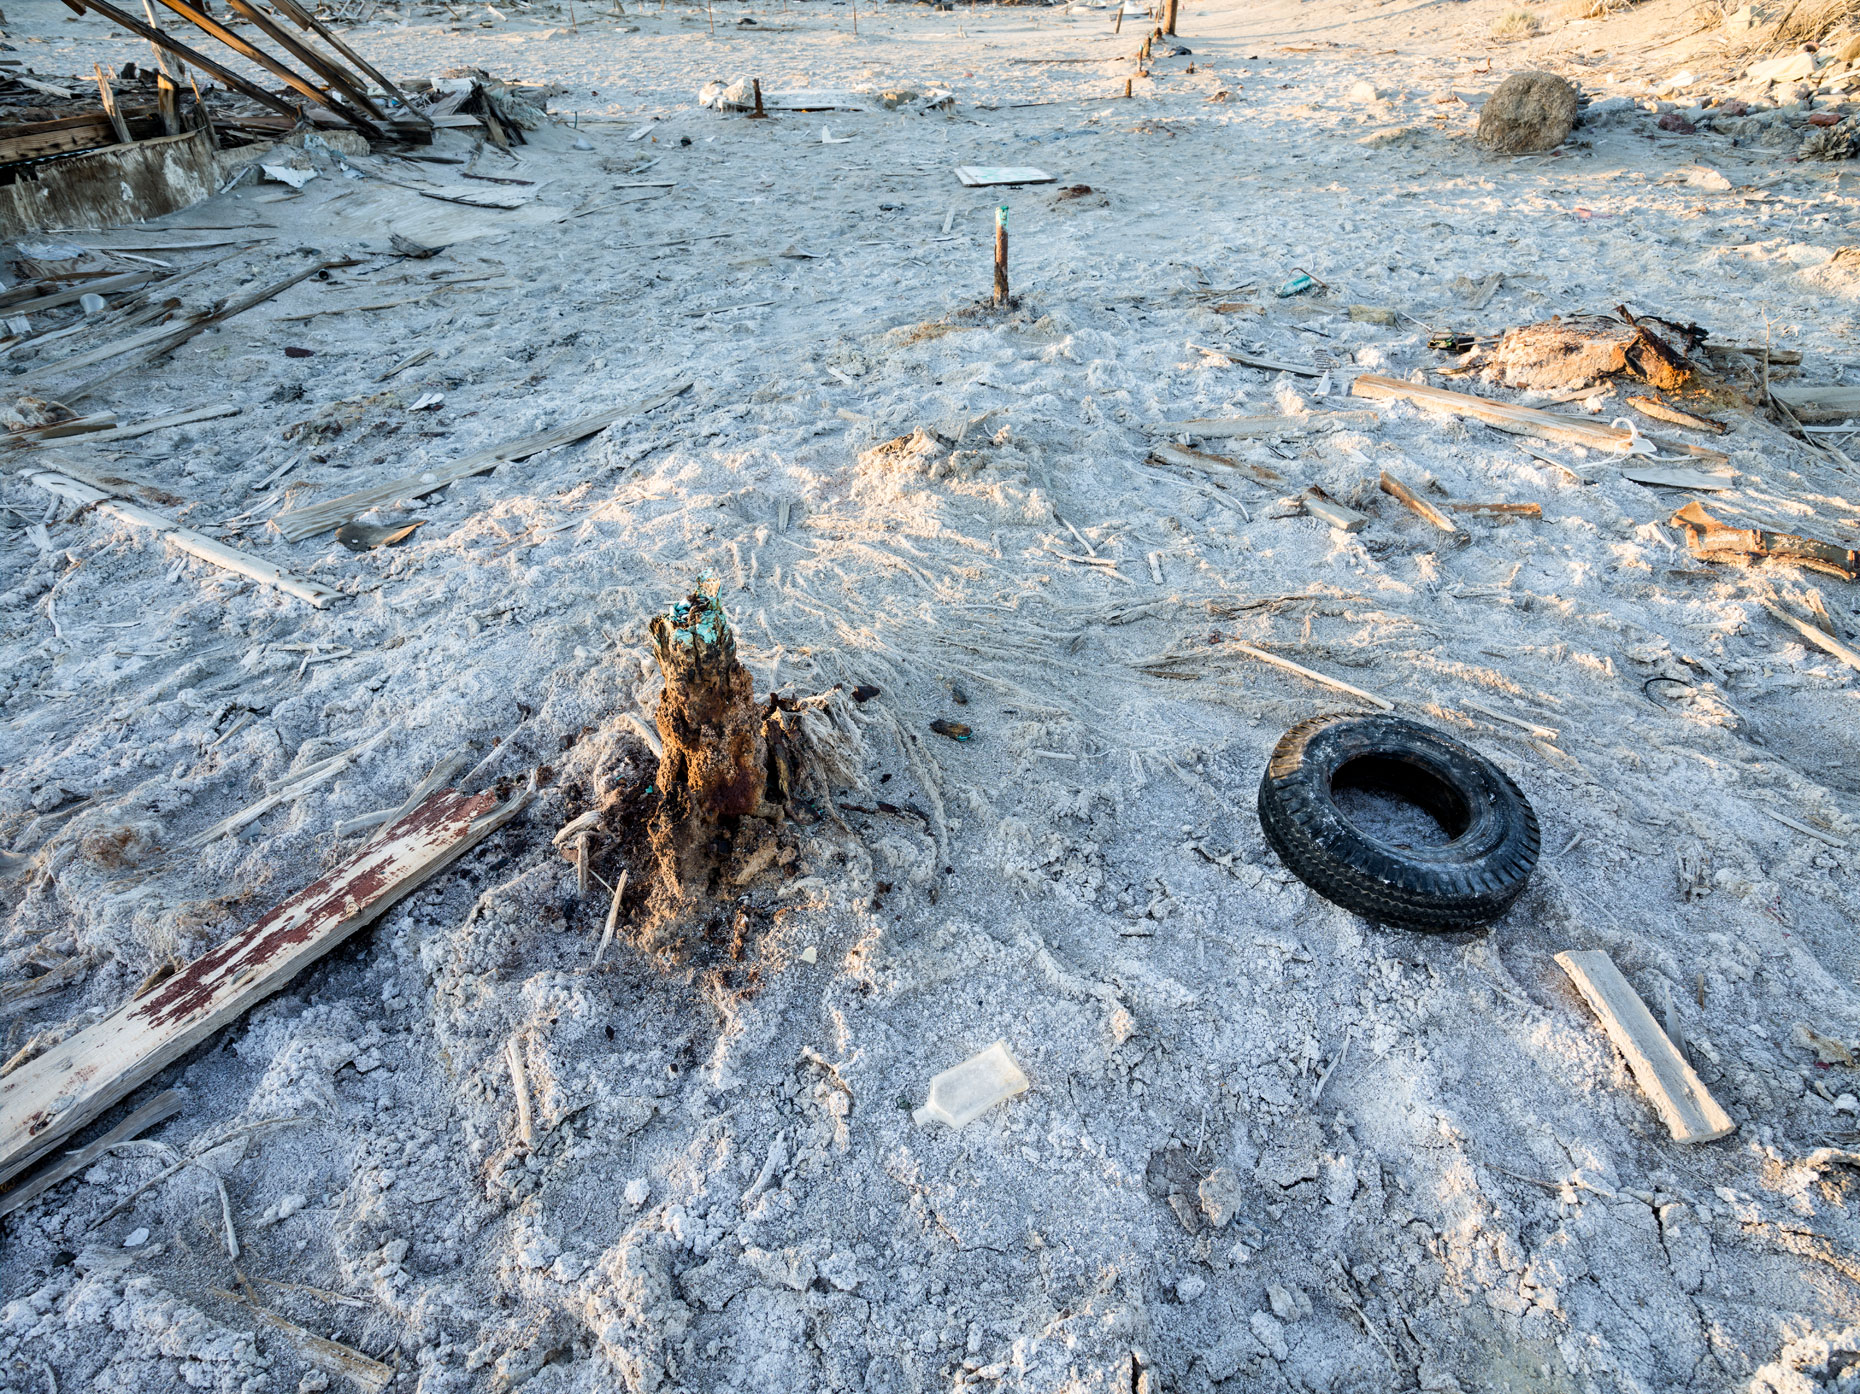 Salton Sea sand castle with tires and other garbage on the Bombay Beach shoreline